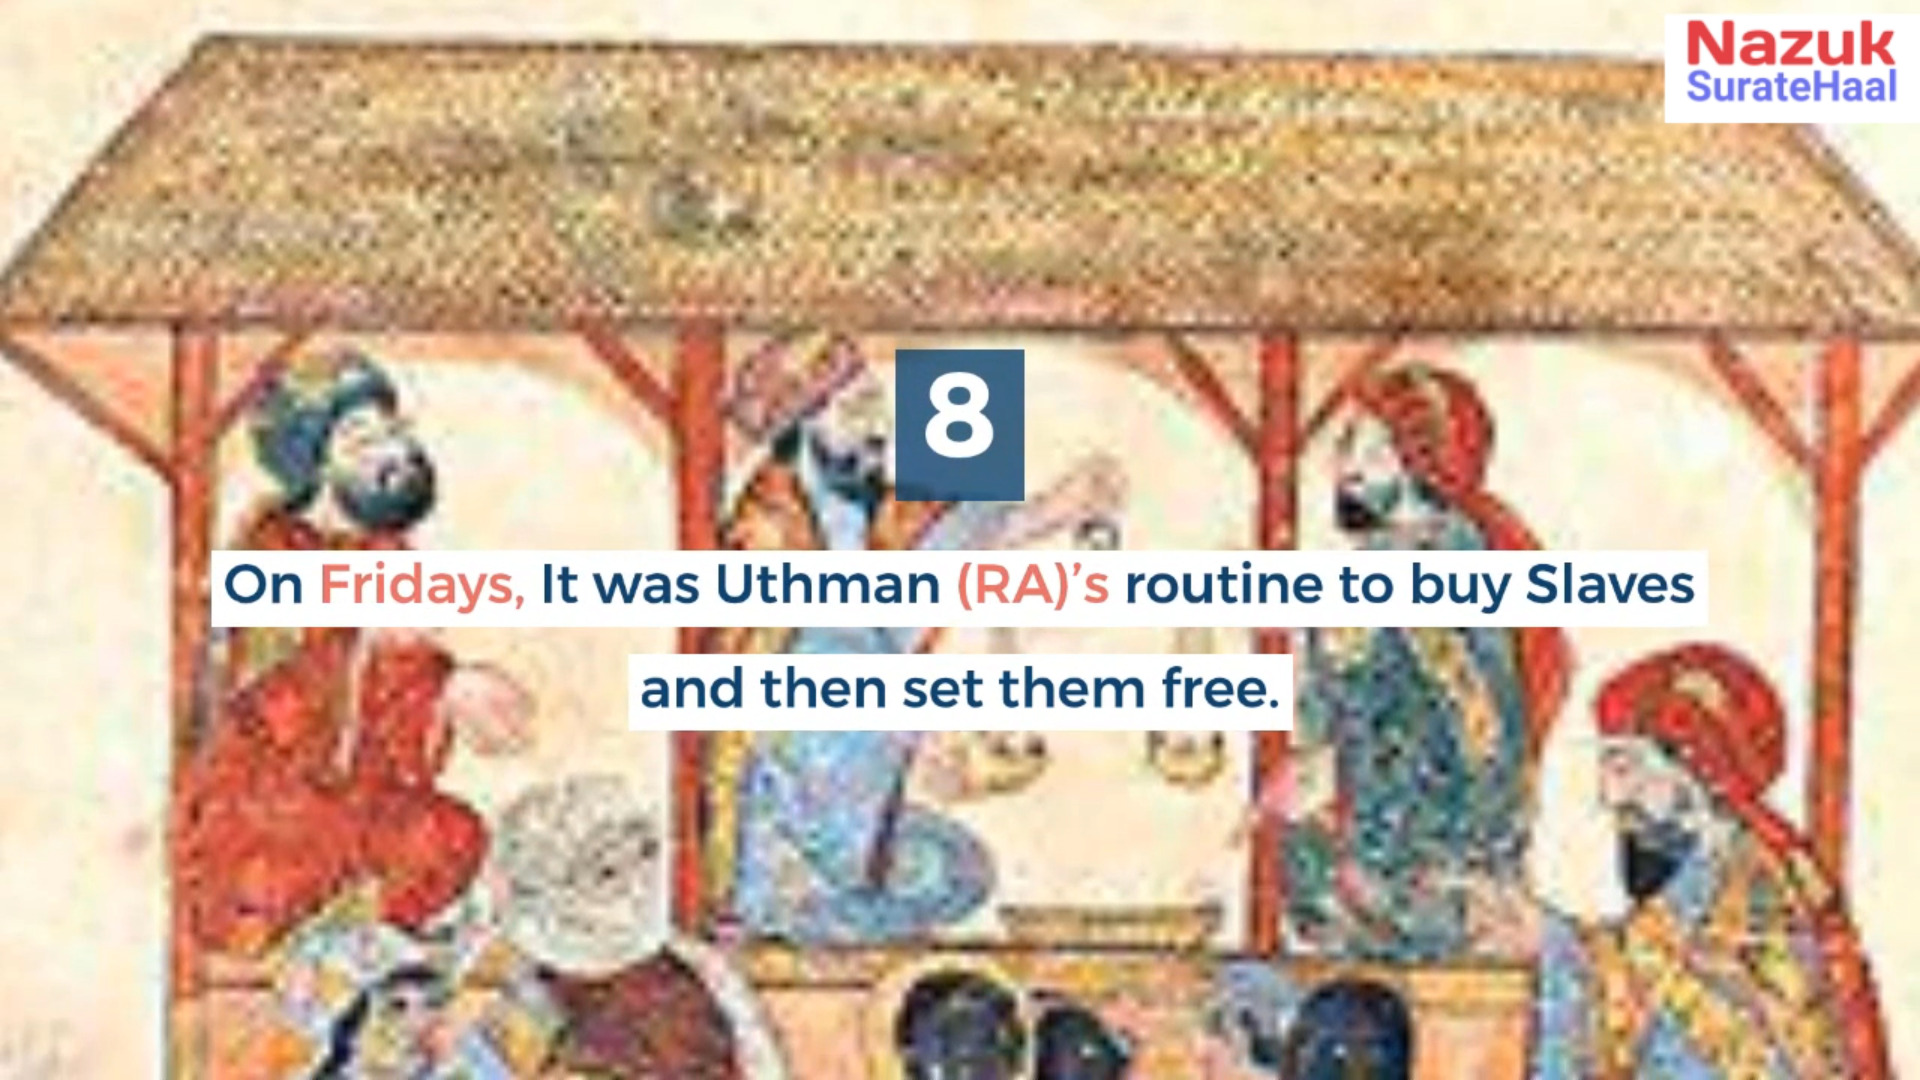 On Fridays, It was Uthman (RA)'s routine to buy Slaves and then set them free.